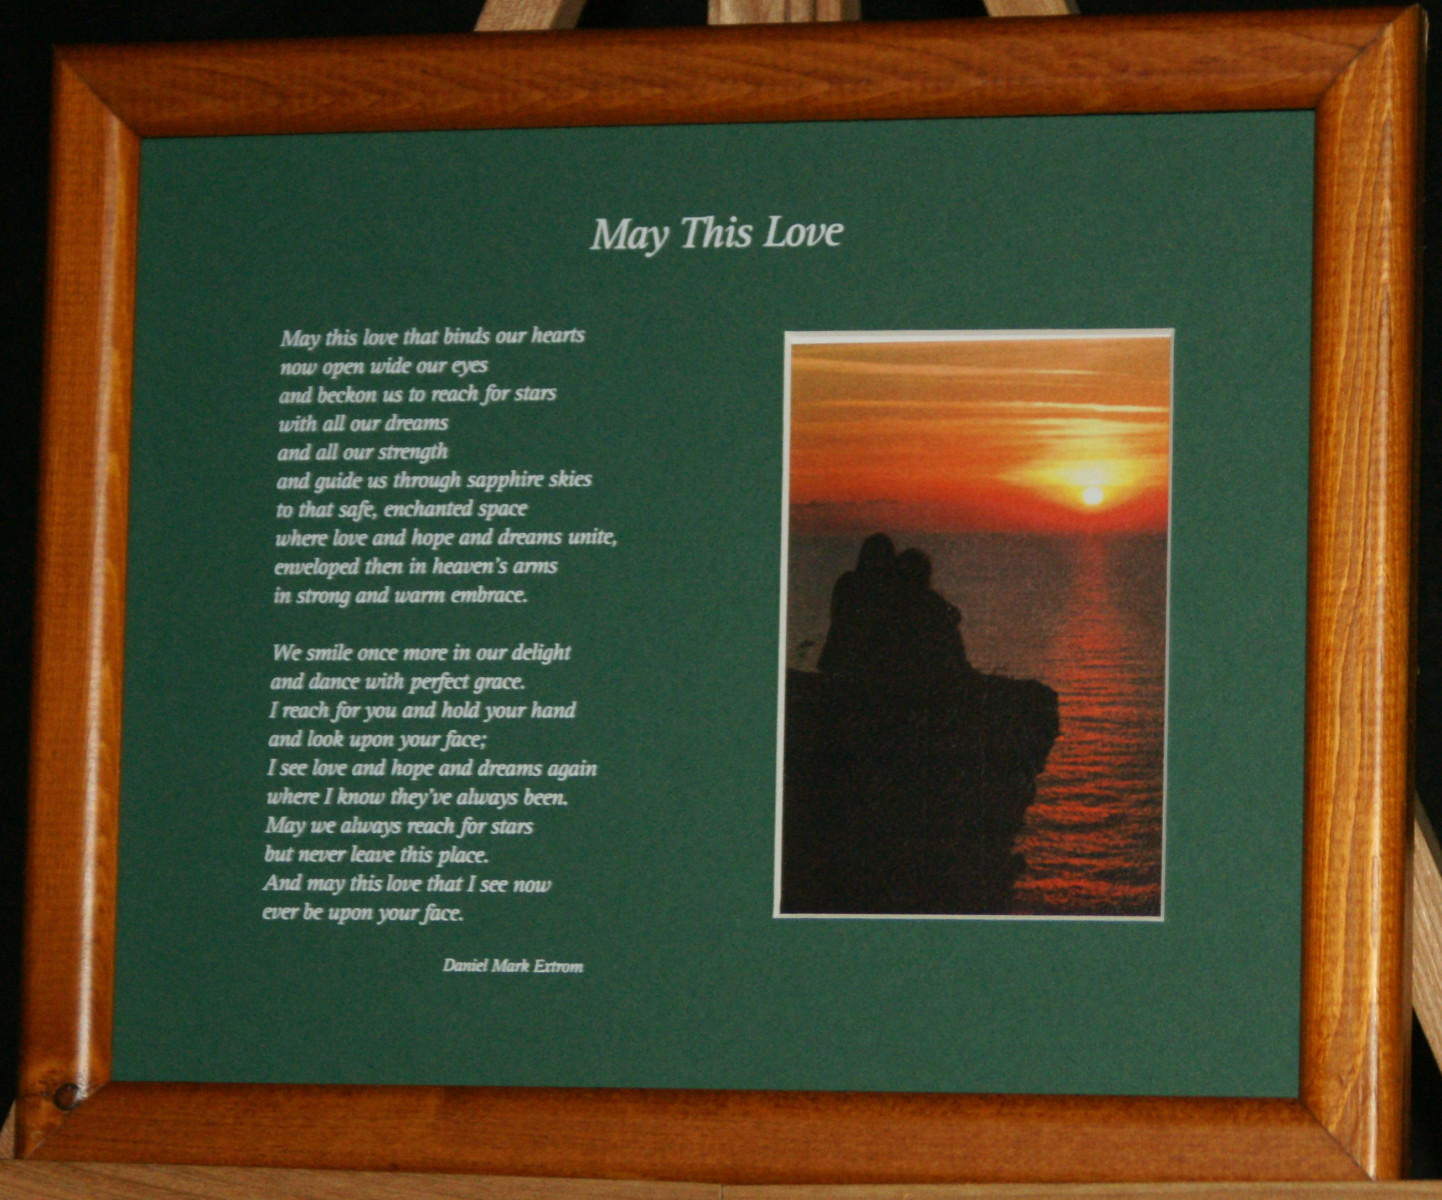 May This Love: A Love Poem, in Green